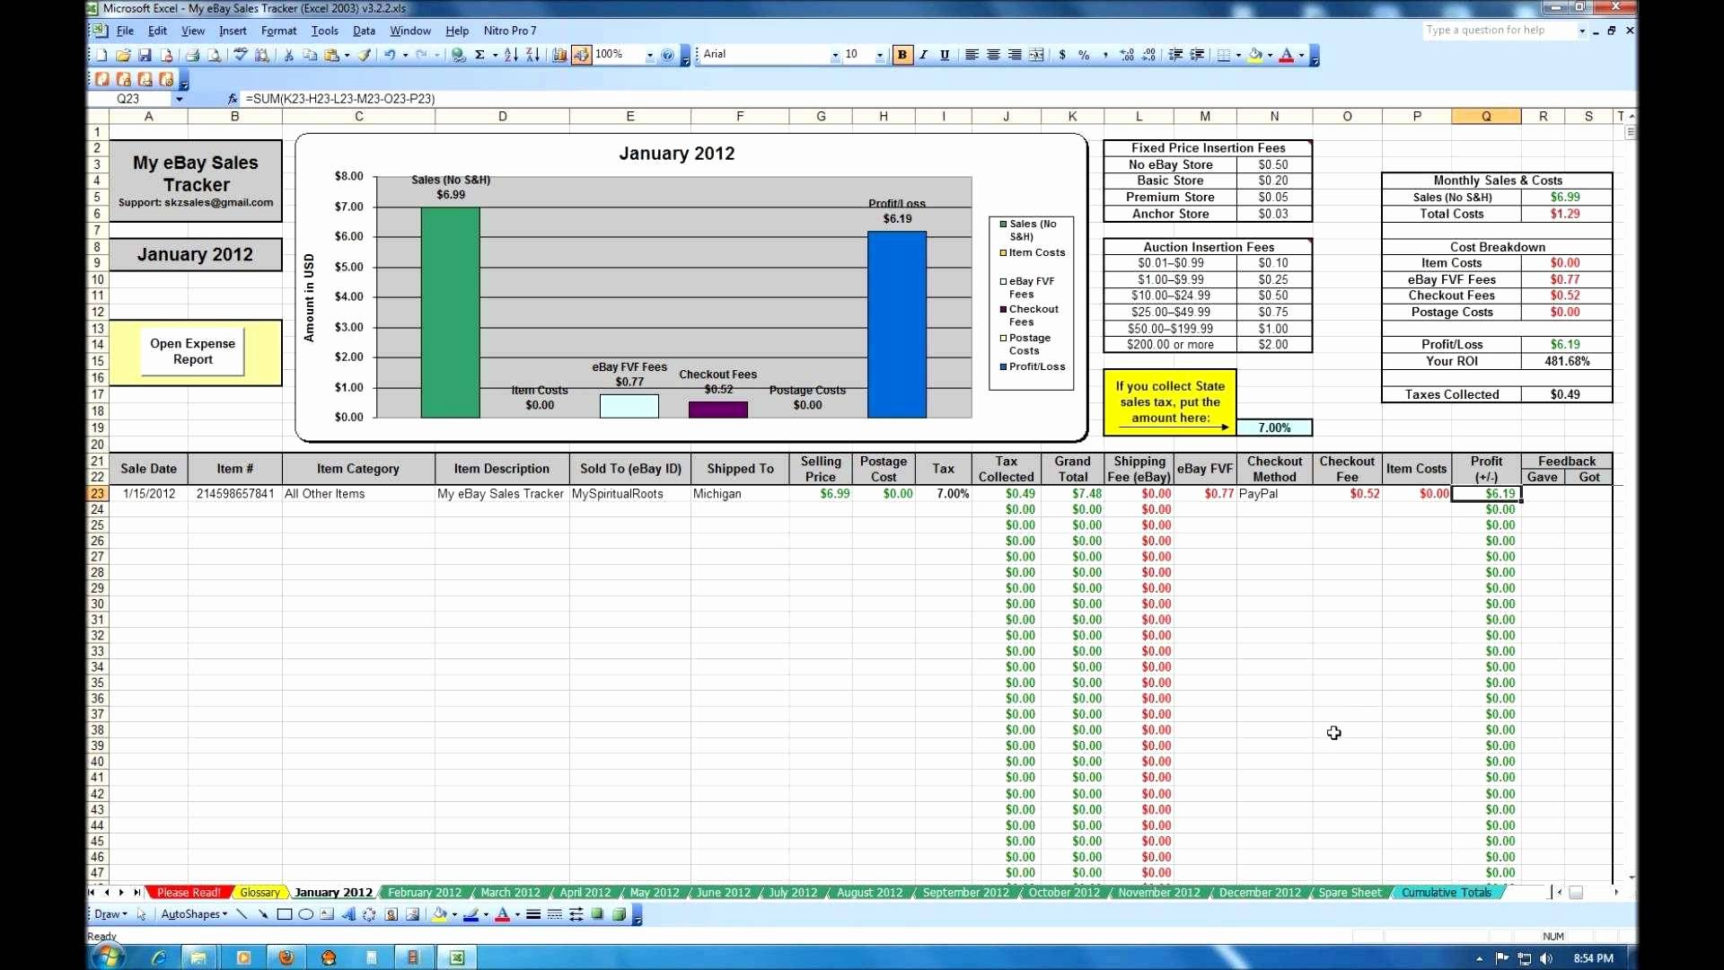 Inventory Management Template Access 2007   Southbay Robot With Inventory Management Template Access 2007